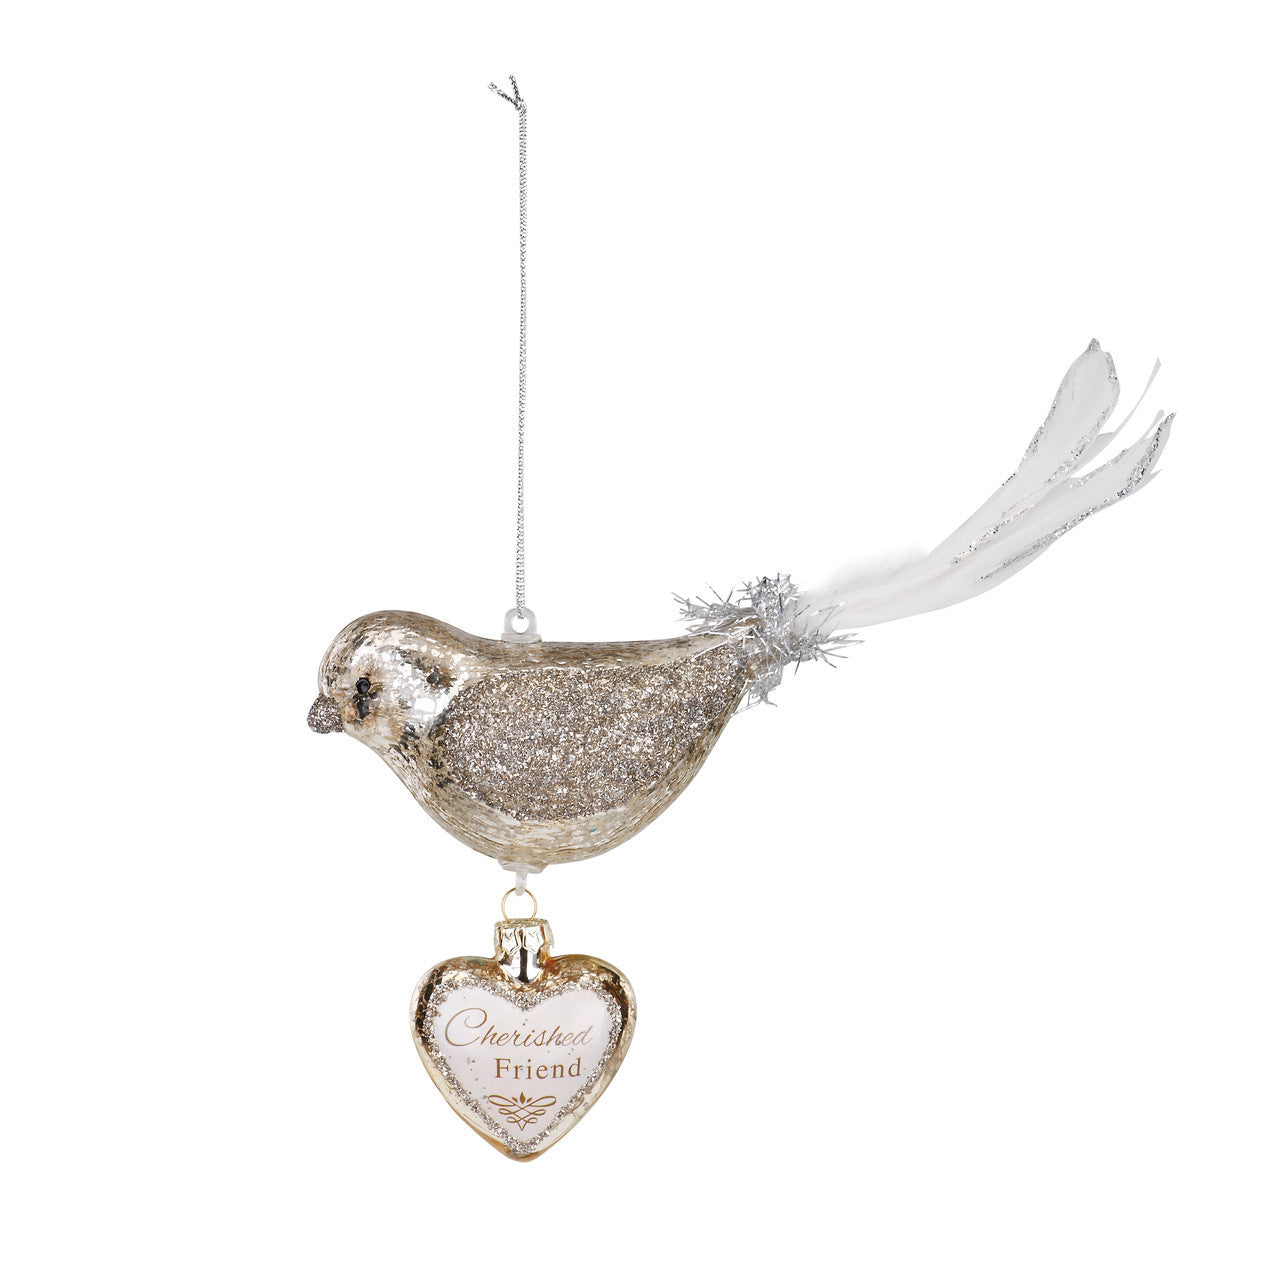 Bird Dangle Heart Glass Ornament - Friend